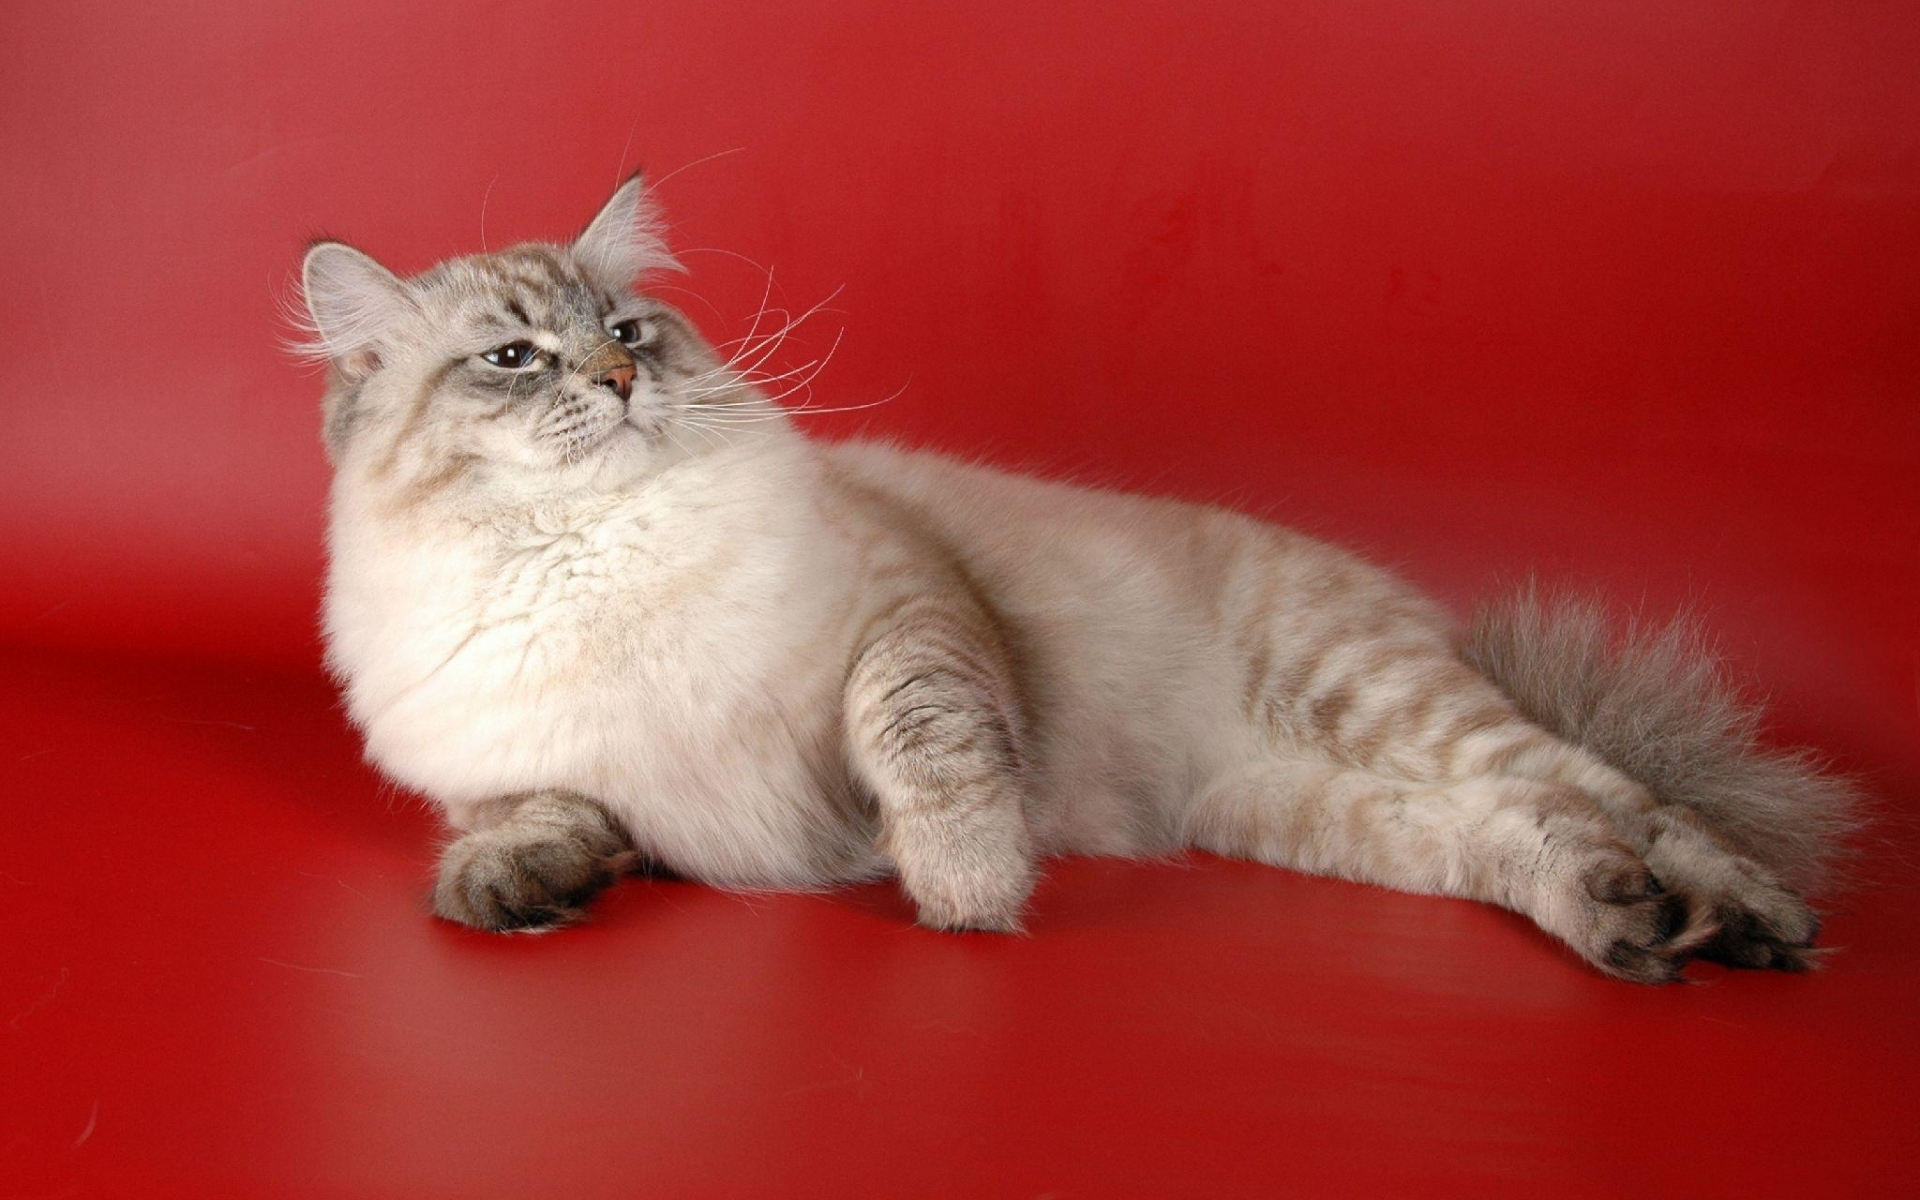 50196 download wallpaper Animals, Cats screensavers and pictures for free